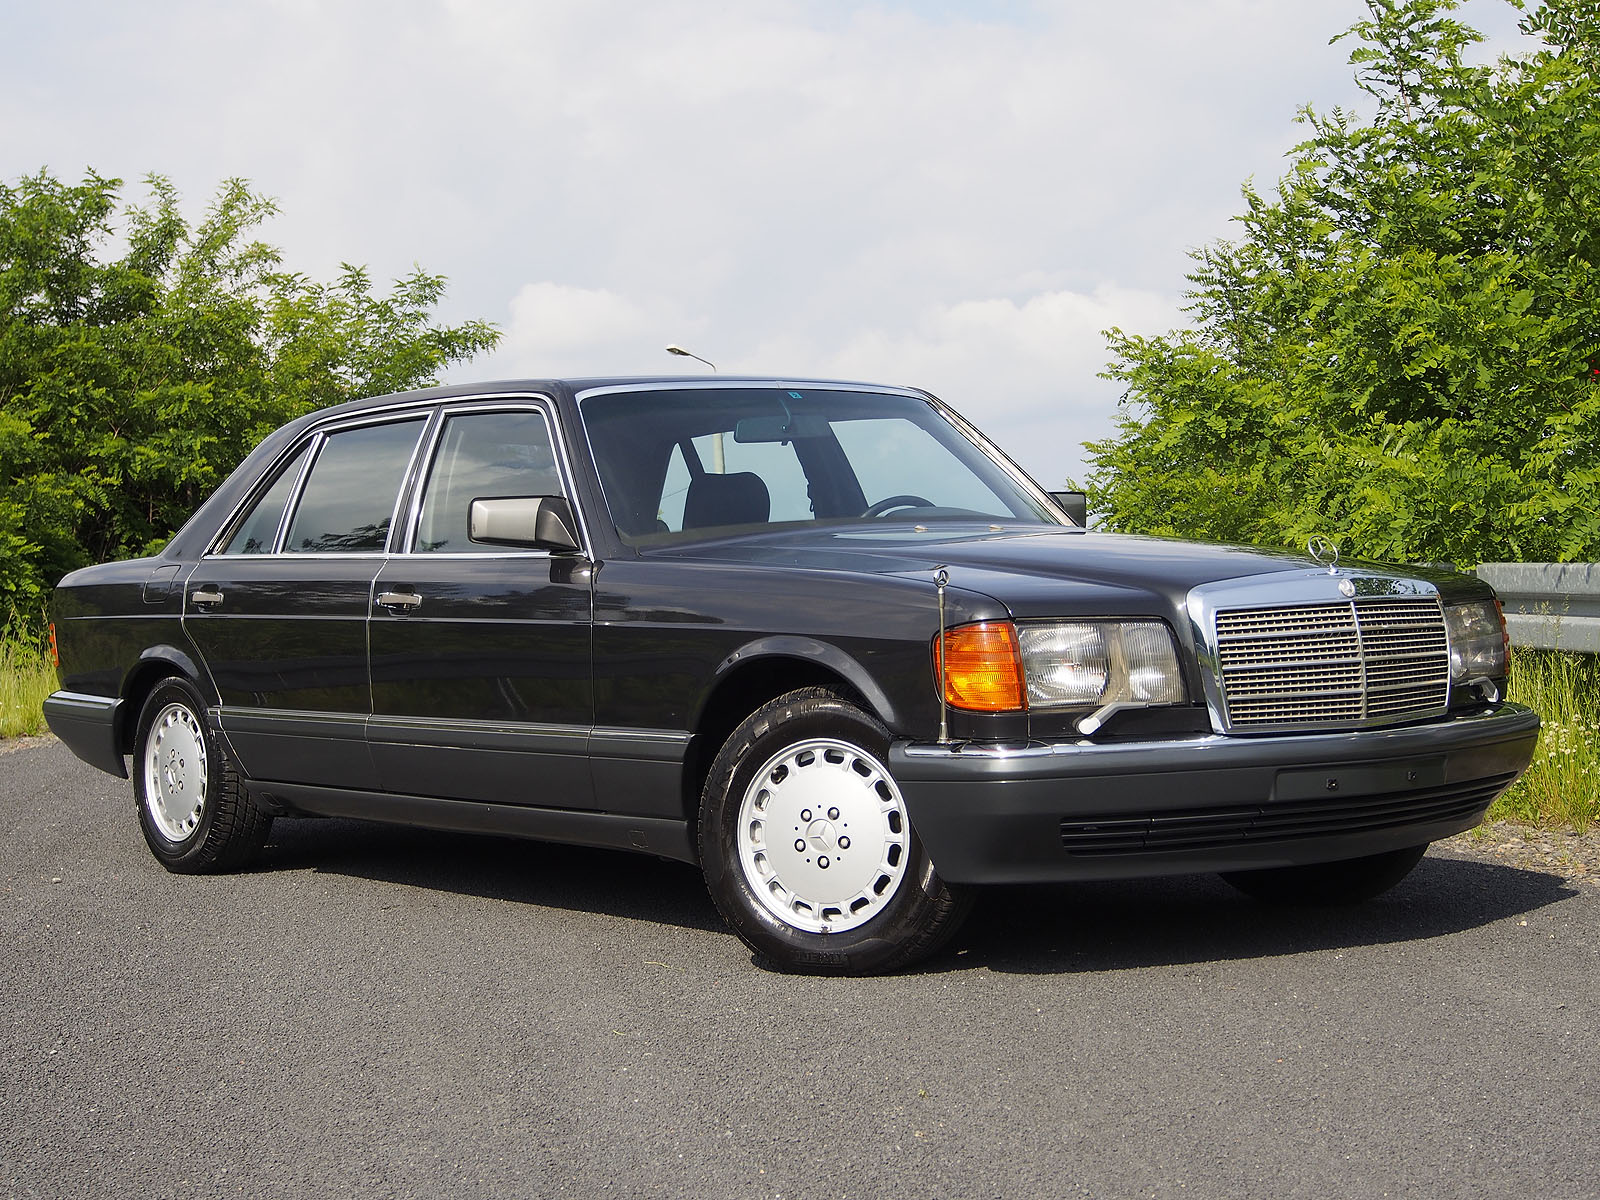 90 mercedes benz 560 sel nowex cars for 90s mercedes benz